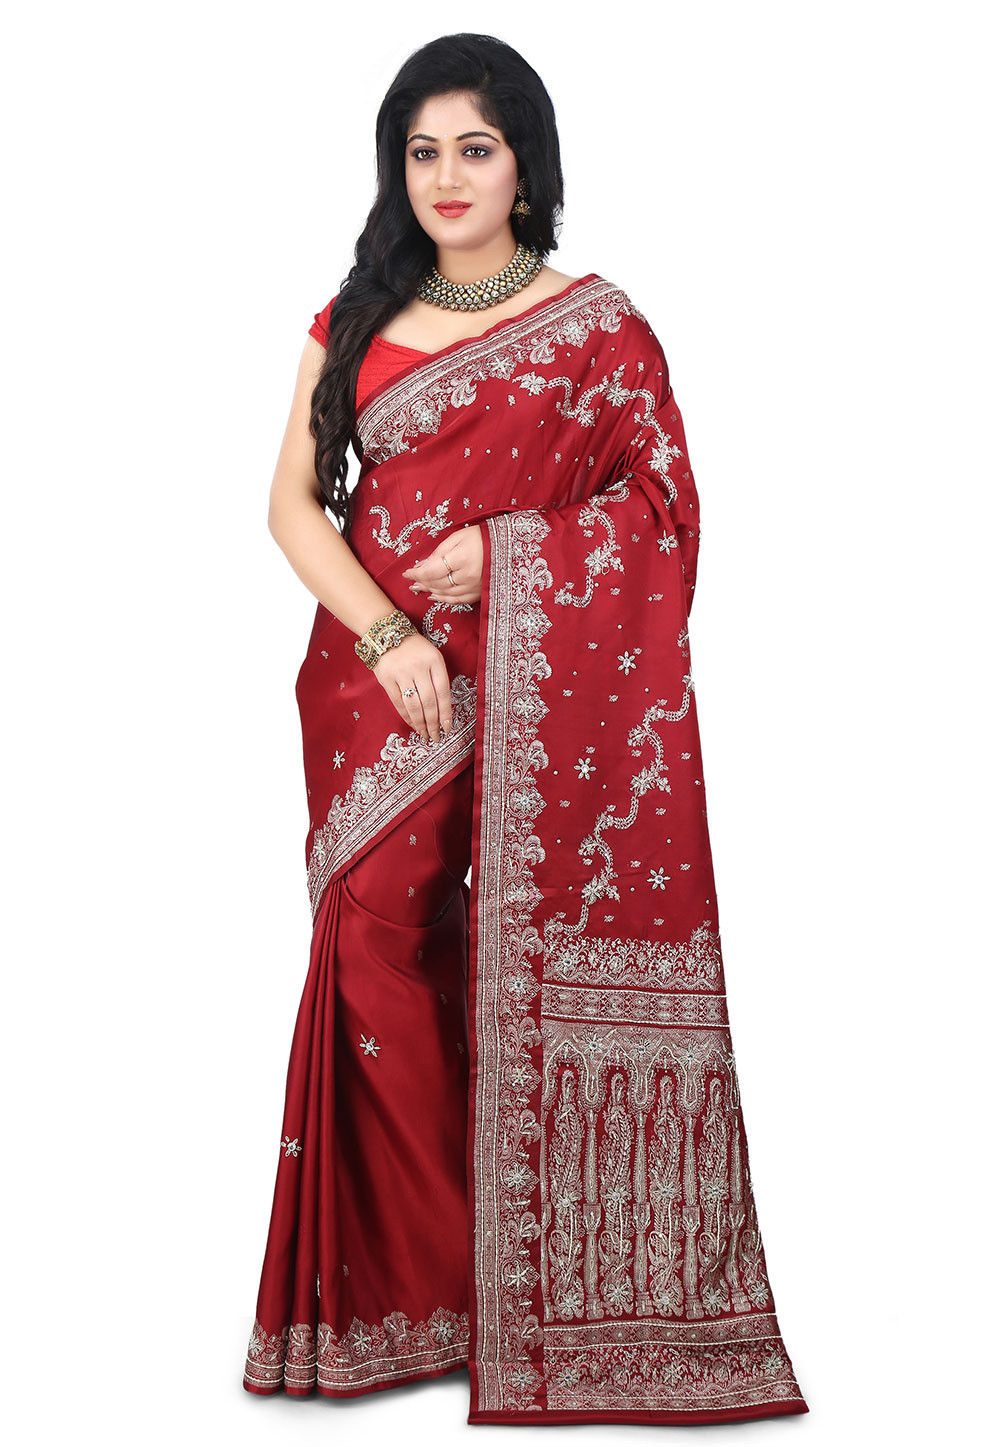 Woven Pure Satin Silk Banarasi Saree in Maroon